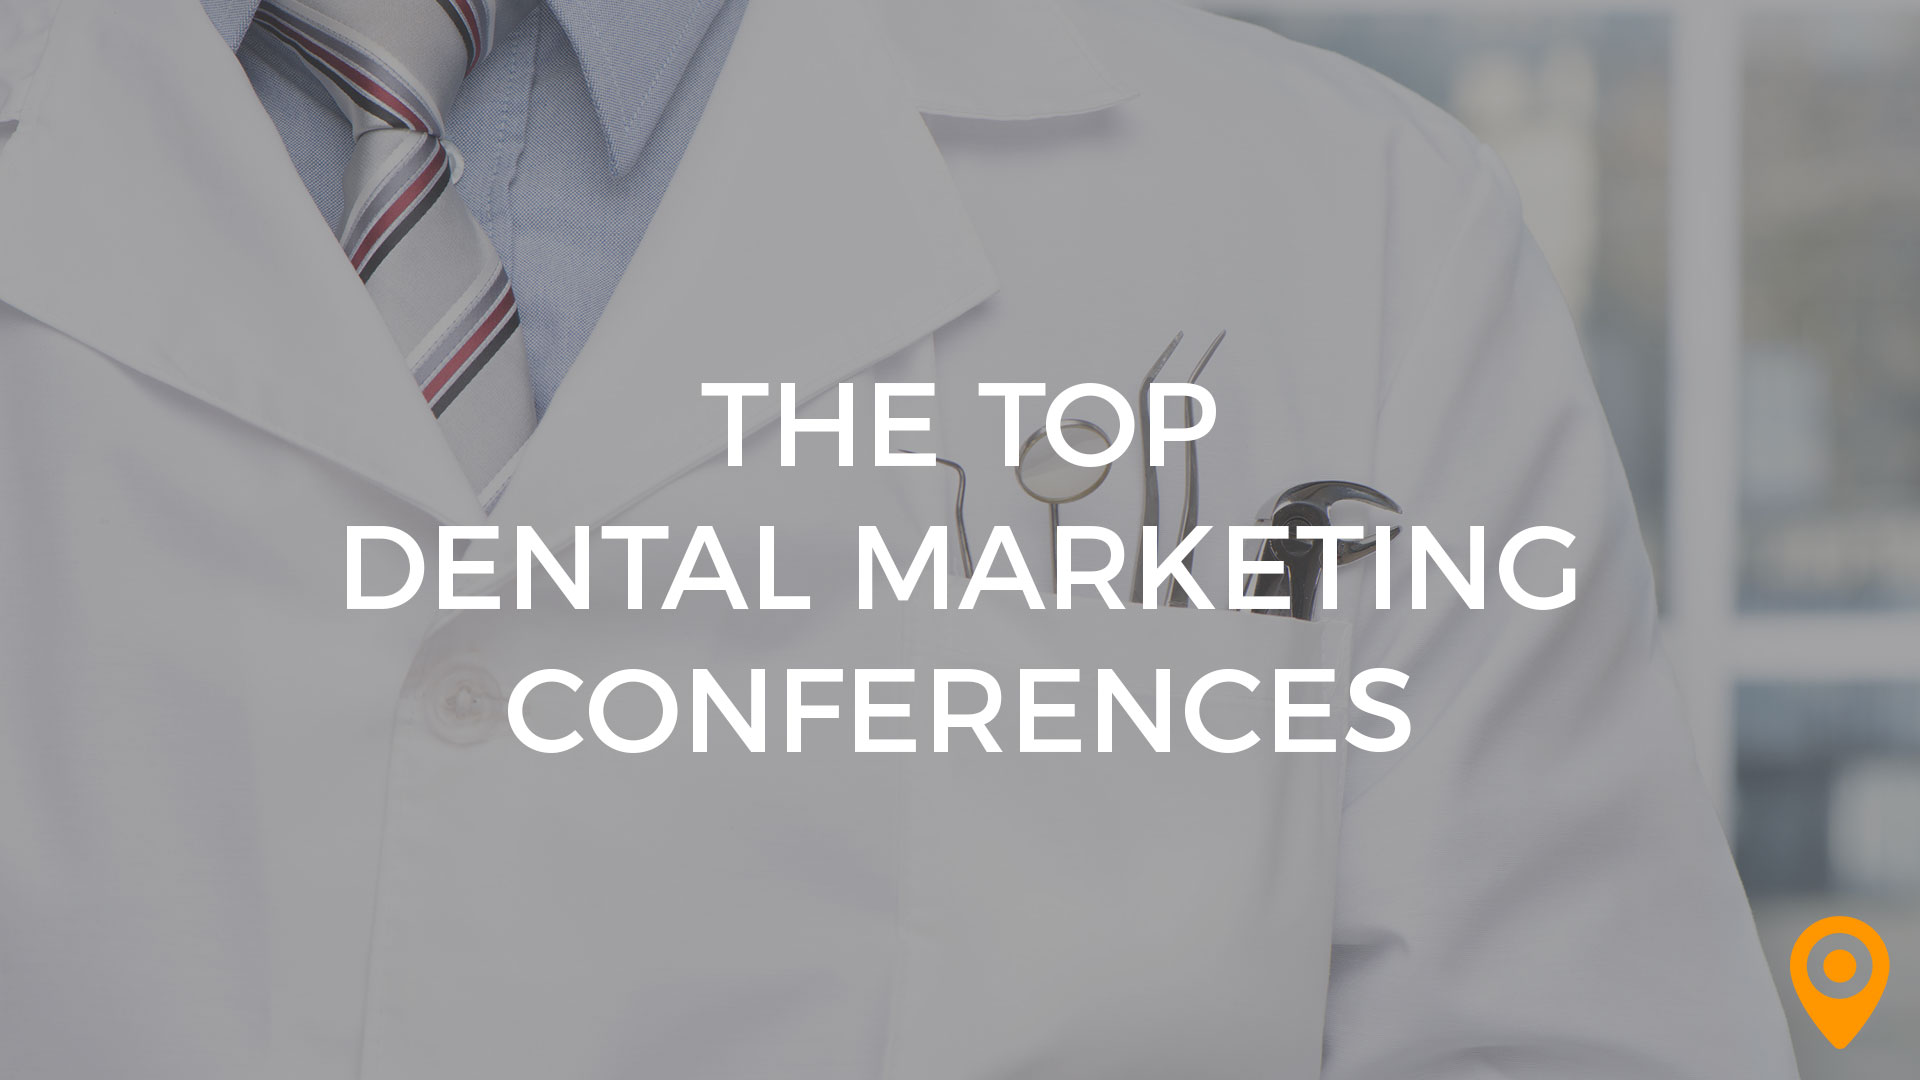 The Top Dental Marketing Conferences